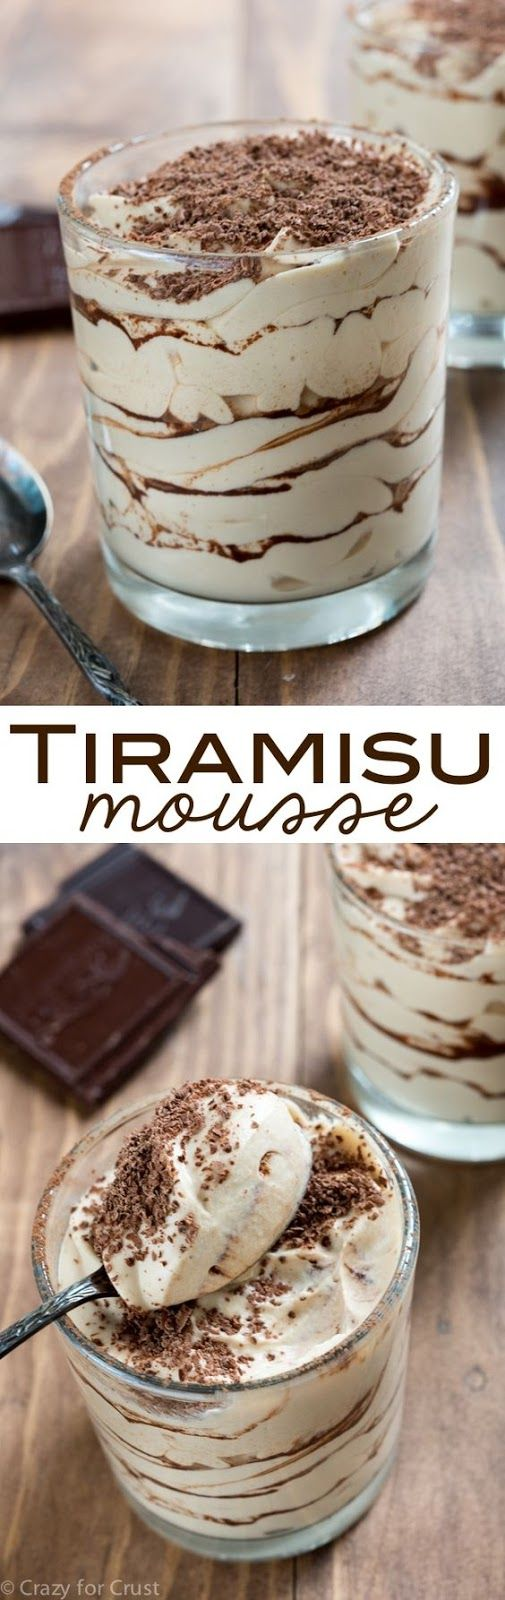 INGREDIENTS:   1 1/2 teaspoons instant coffee (I use the Starbucks Via packs)   1/4 cup hot water   1 cup heavy whipping cream, cold (s...